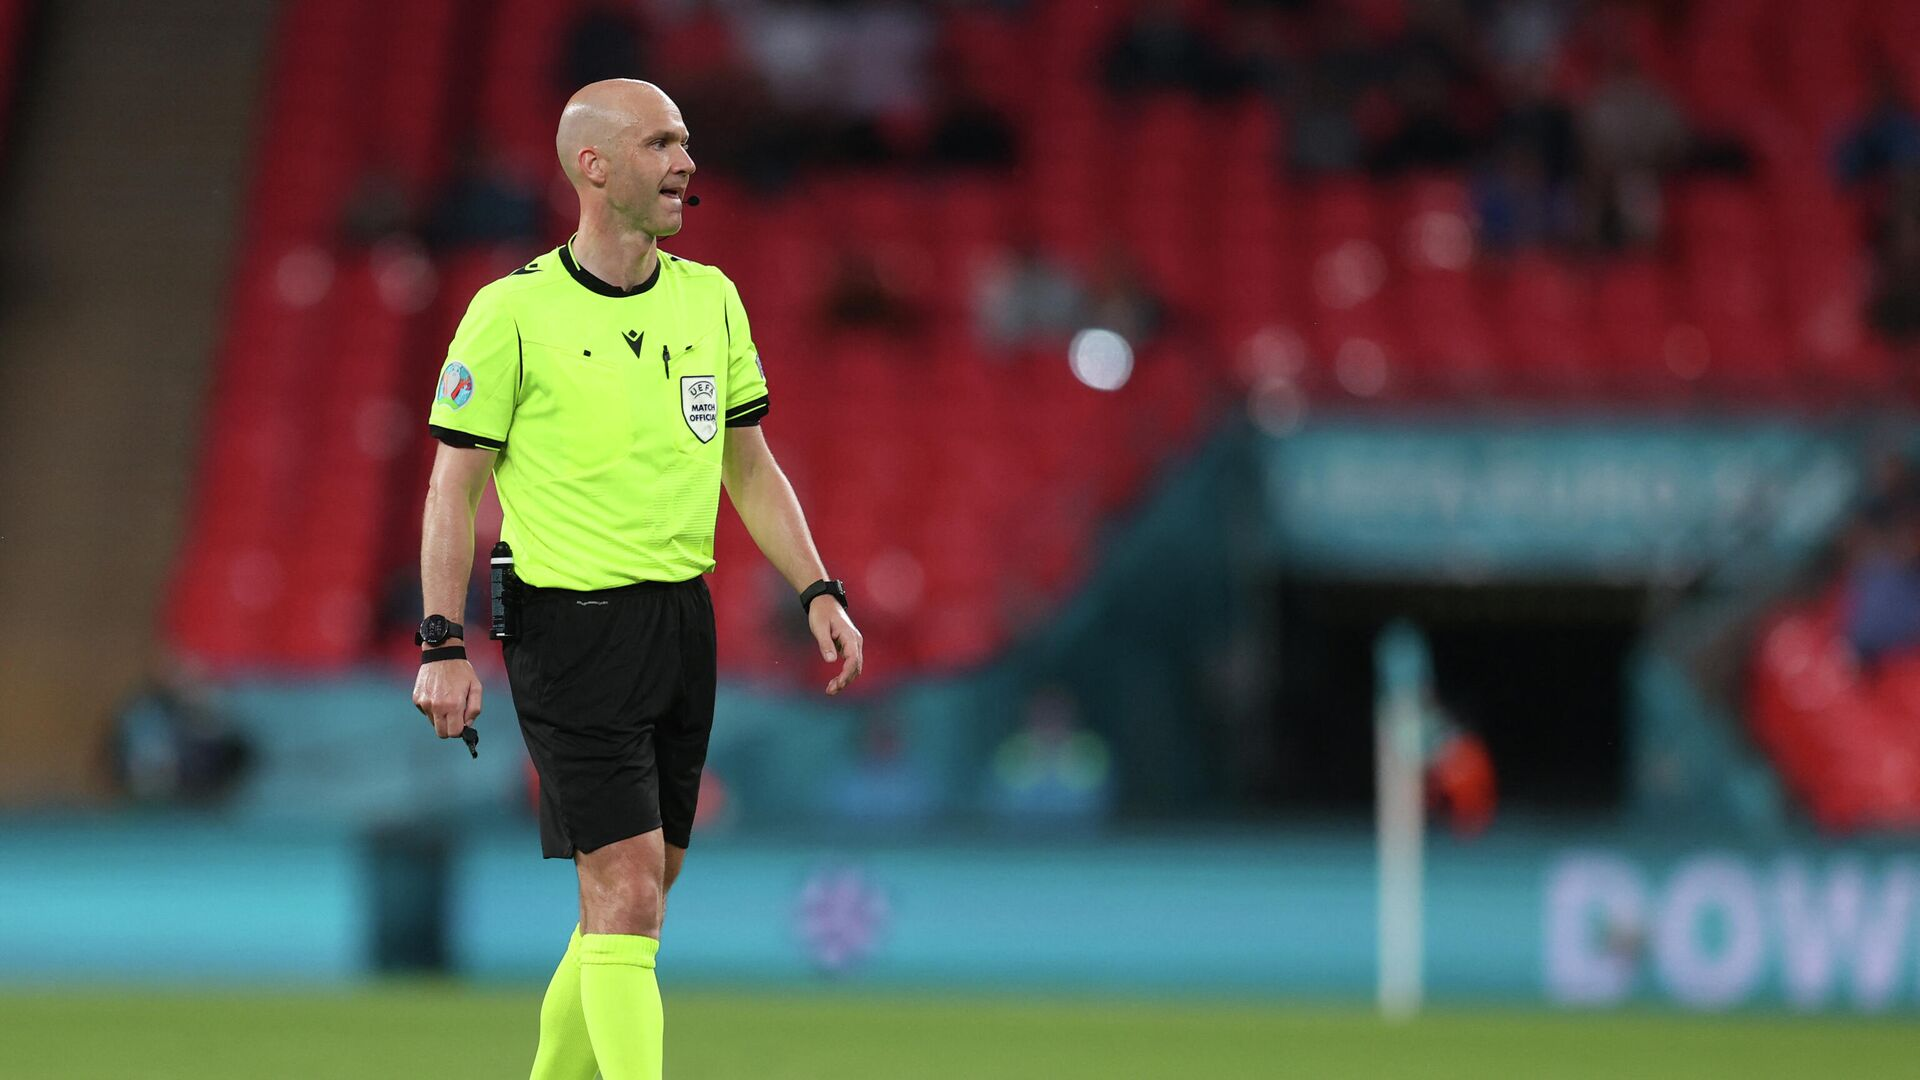 English referee Anthony Taylor speaks to the players during the UEFA EURO 2020 round of 16 football match between Italy and Austria at Wembley Stadium in London on June 26, 2021. (Photo by Catherine Ivill / POOL / AFP) - РИА Новости, 1920, 03.08.2021